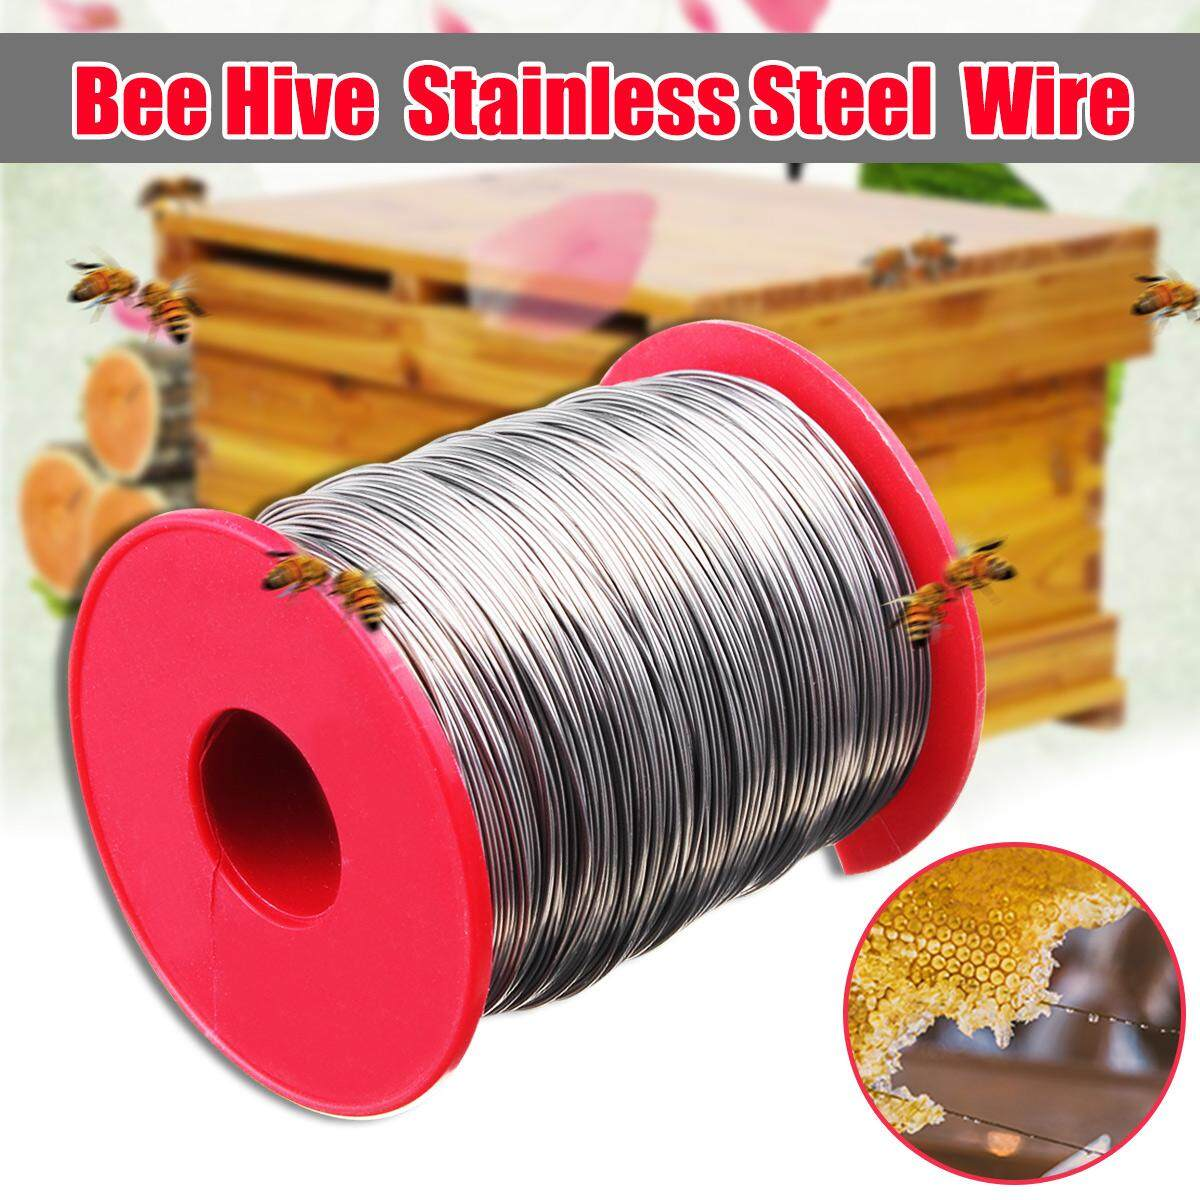 500g 0.5mm Stainless Steel Bee Hive Frame Wax Foundation Wire Keeping Roll